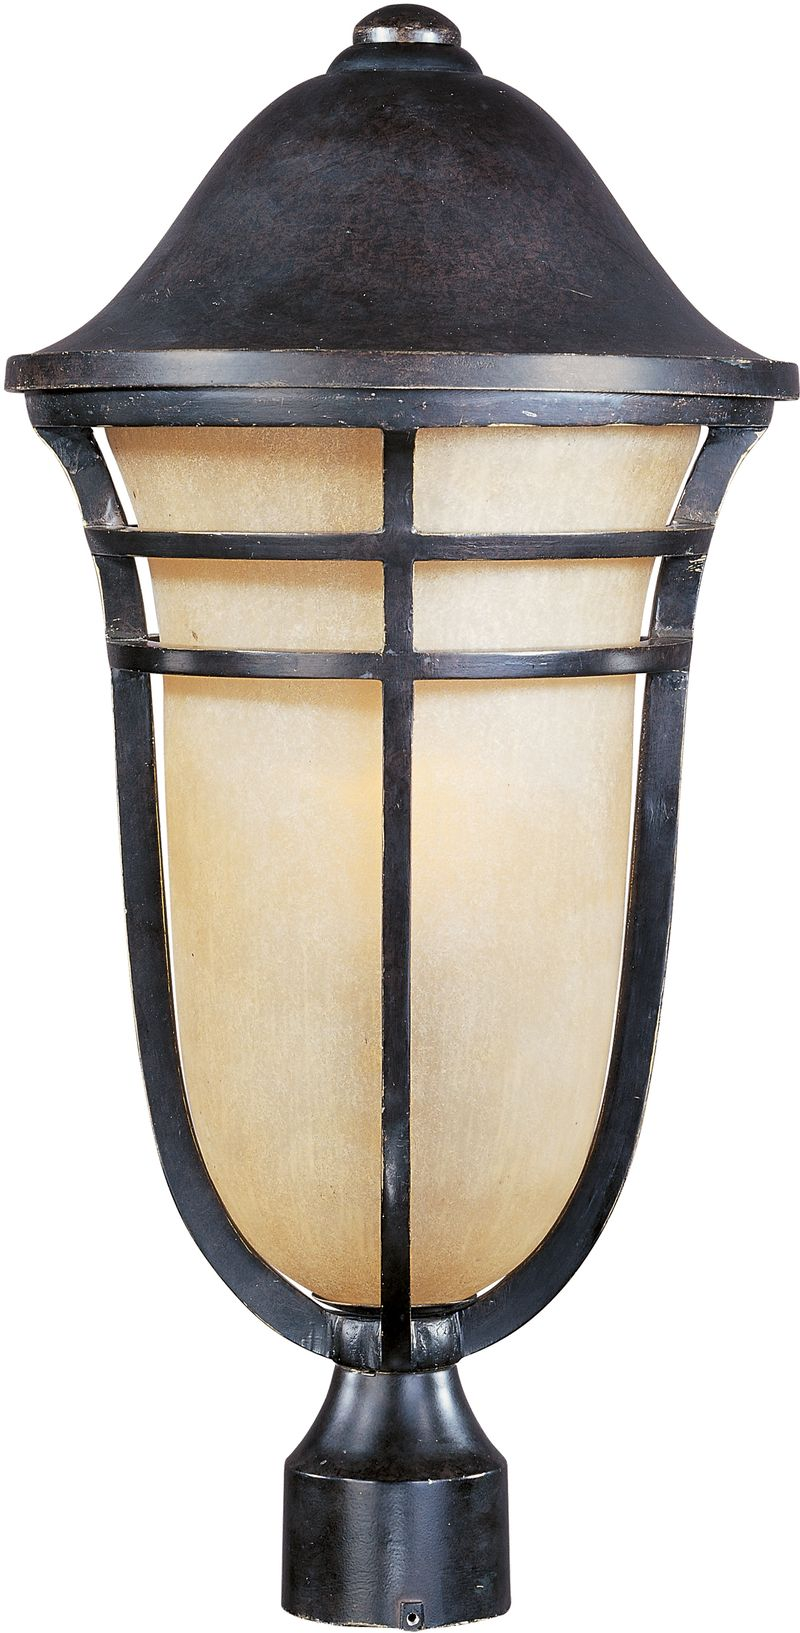 "Westport VX 11.25"" 1-Light Post Mount - Artesian Bronze"